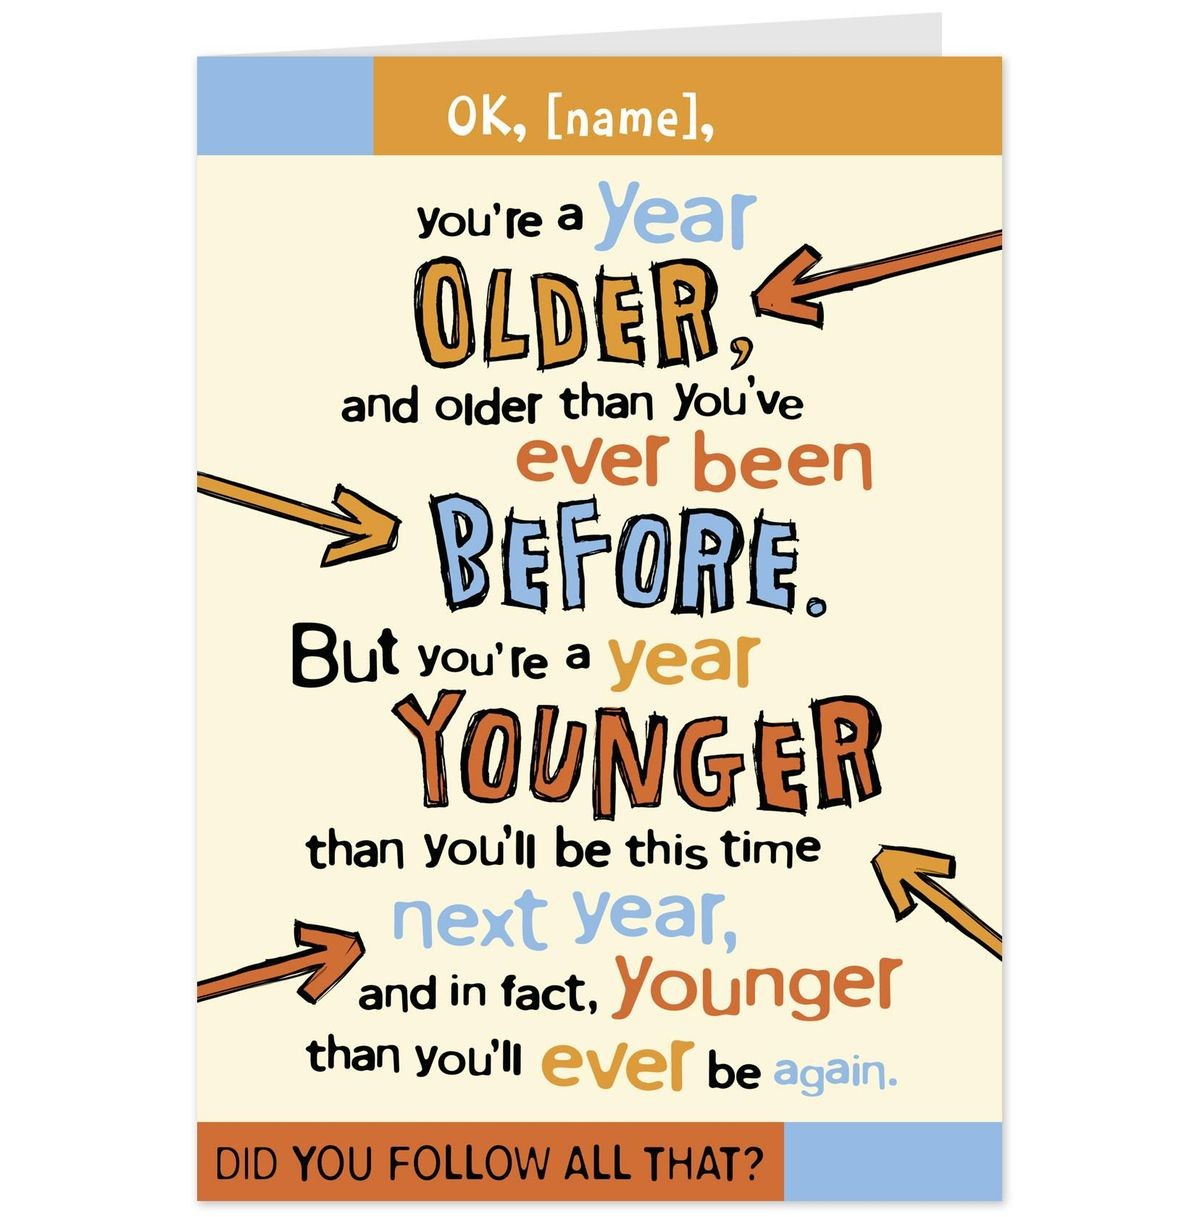 happy birthday card sayings for friends ; funny-birthday-quotes-for-friends-elegant-friendship-funny-birthday-card-sayings-about-age-also-funny-of-funny-birthday-quotes-for-friends